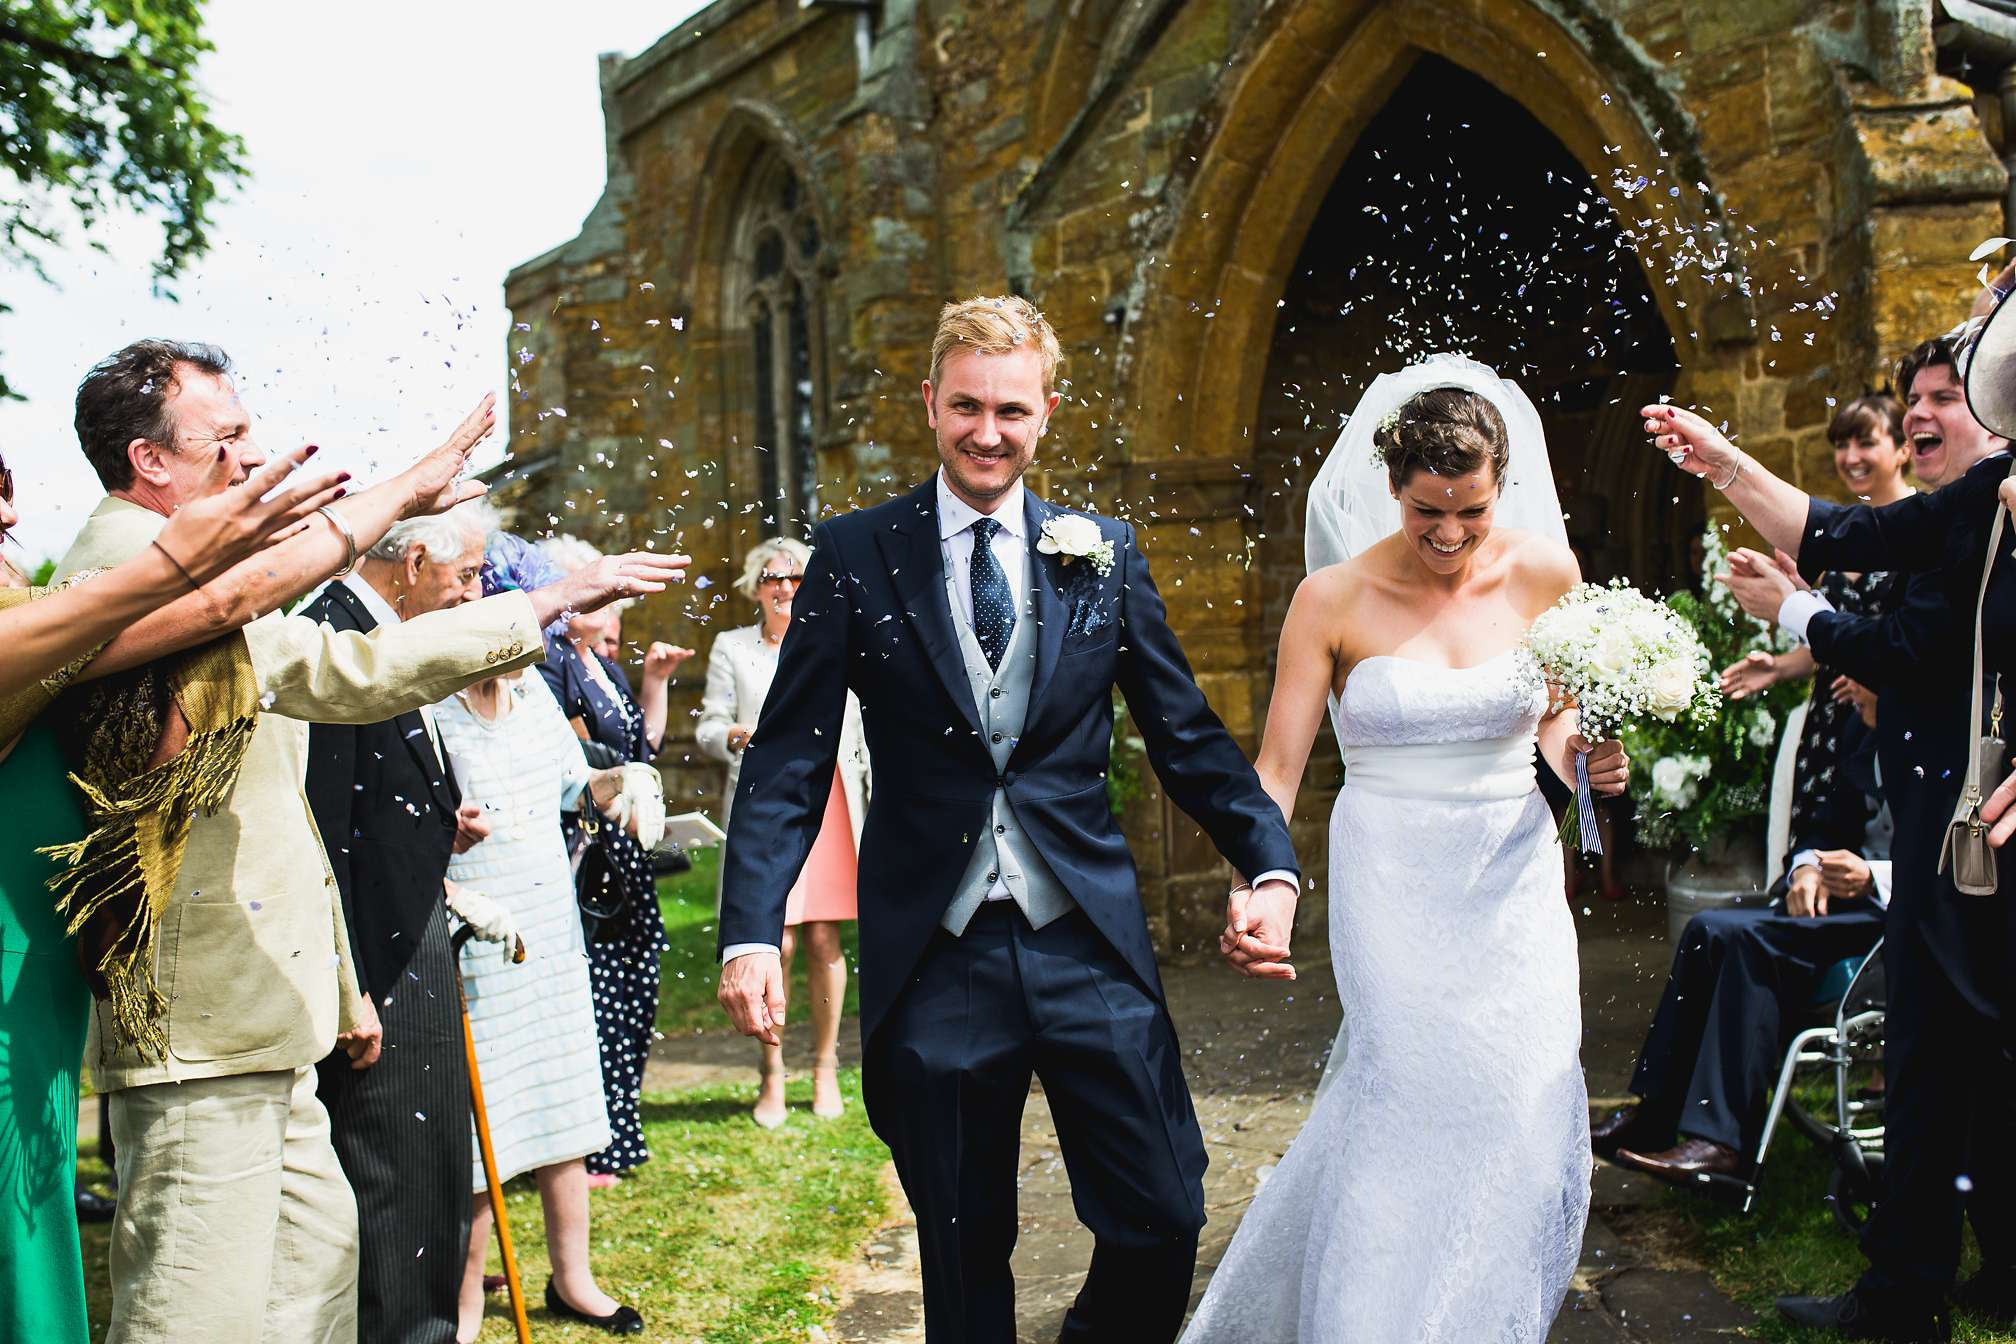 Fun confetti moment, running out of the church